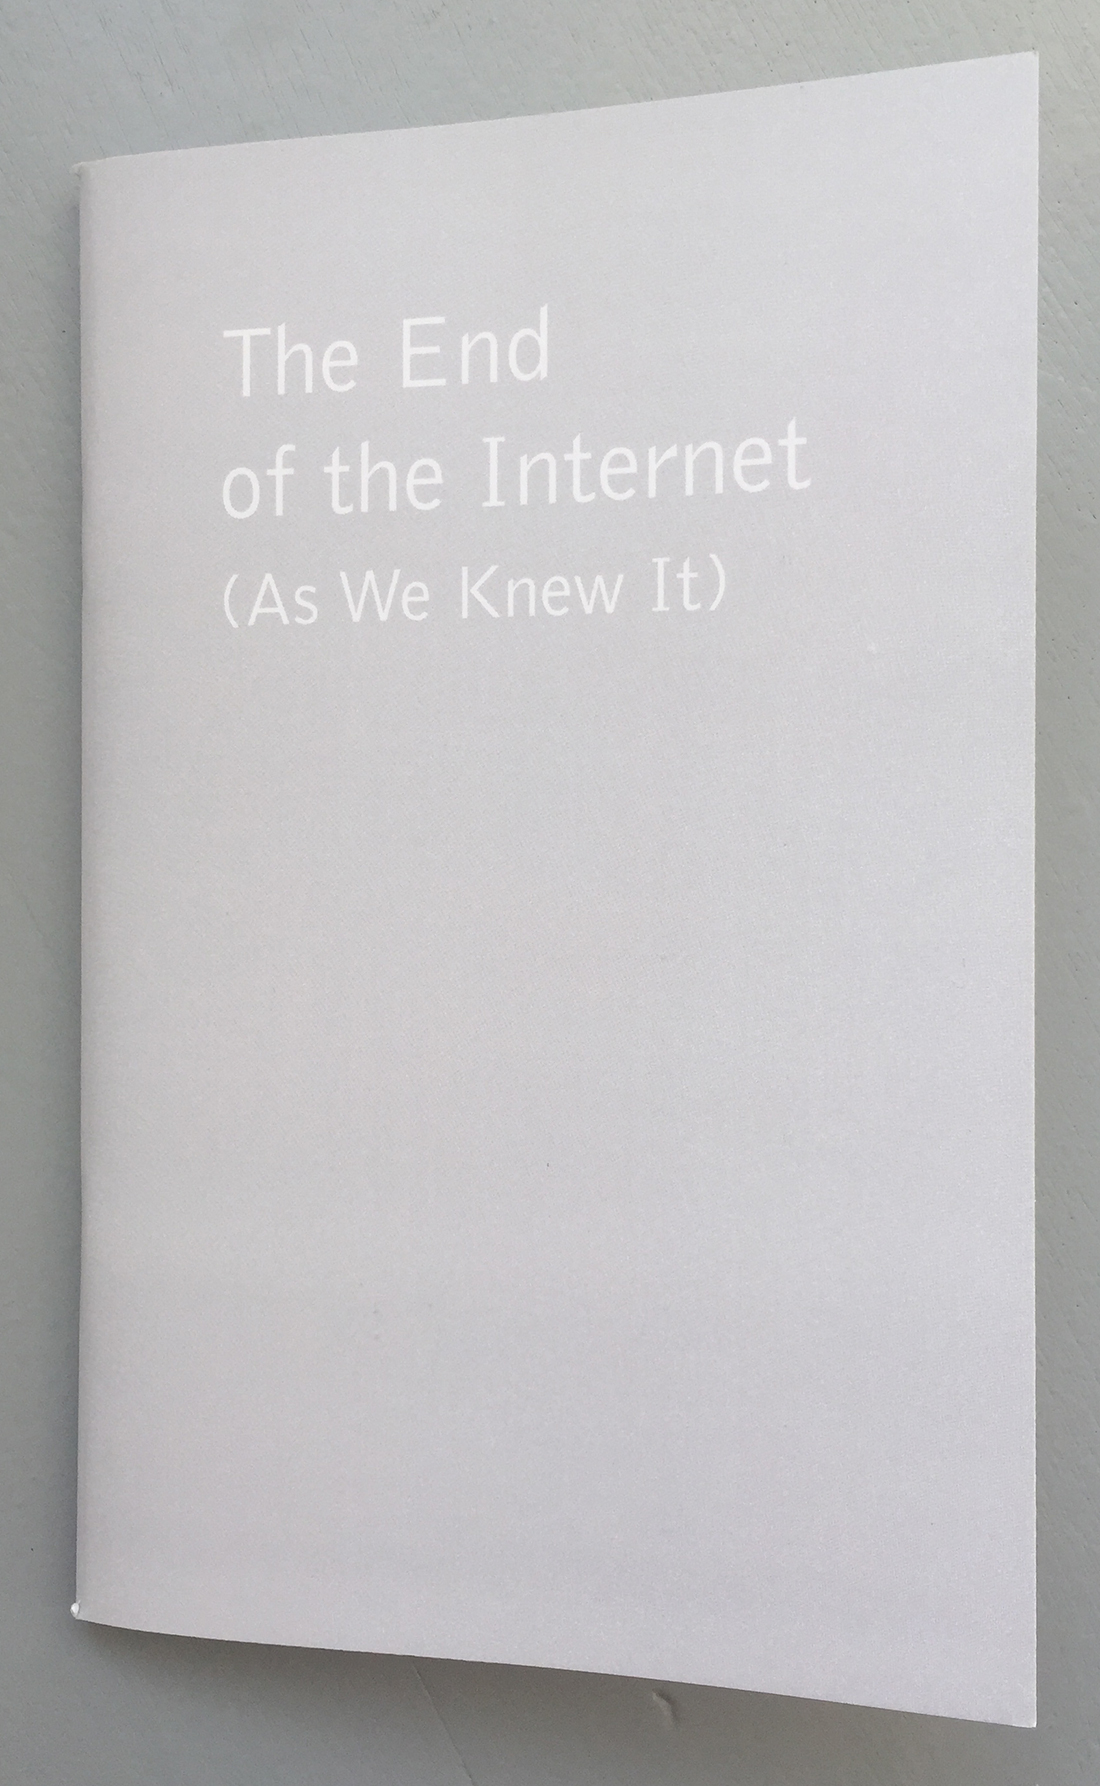 Inversion Practice #1: The End of the Internet (As We Knew It)